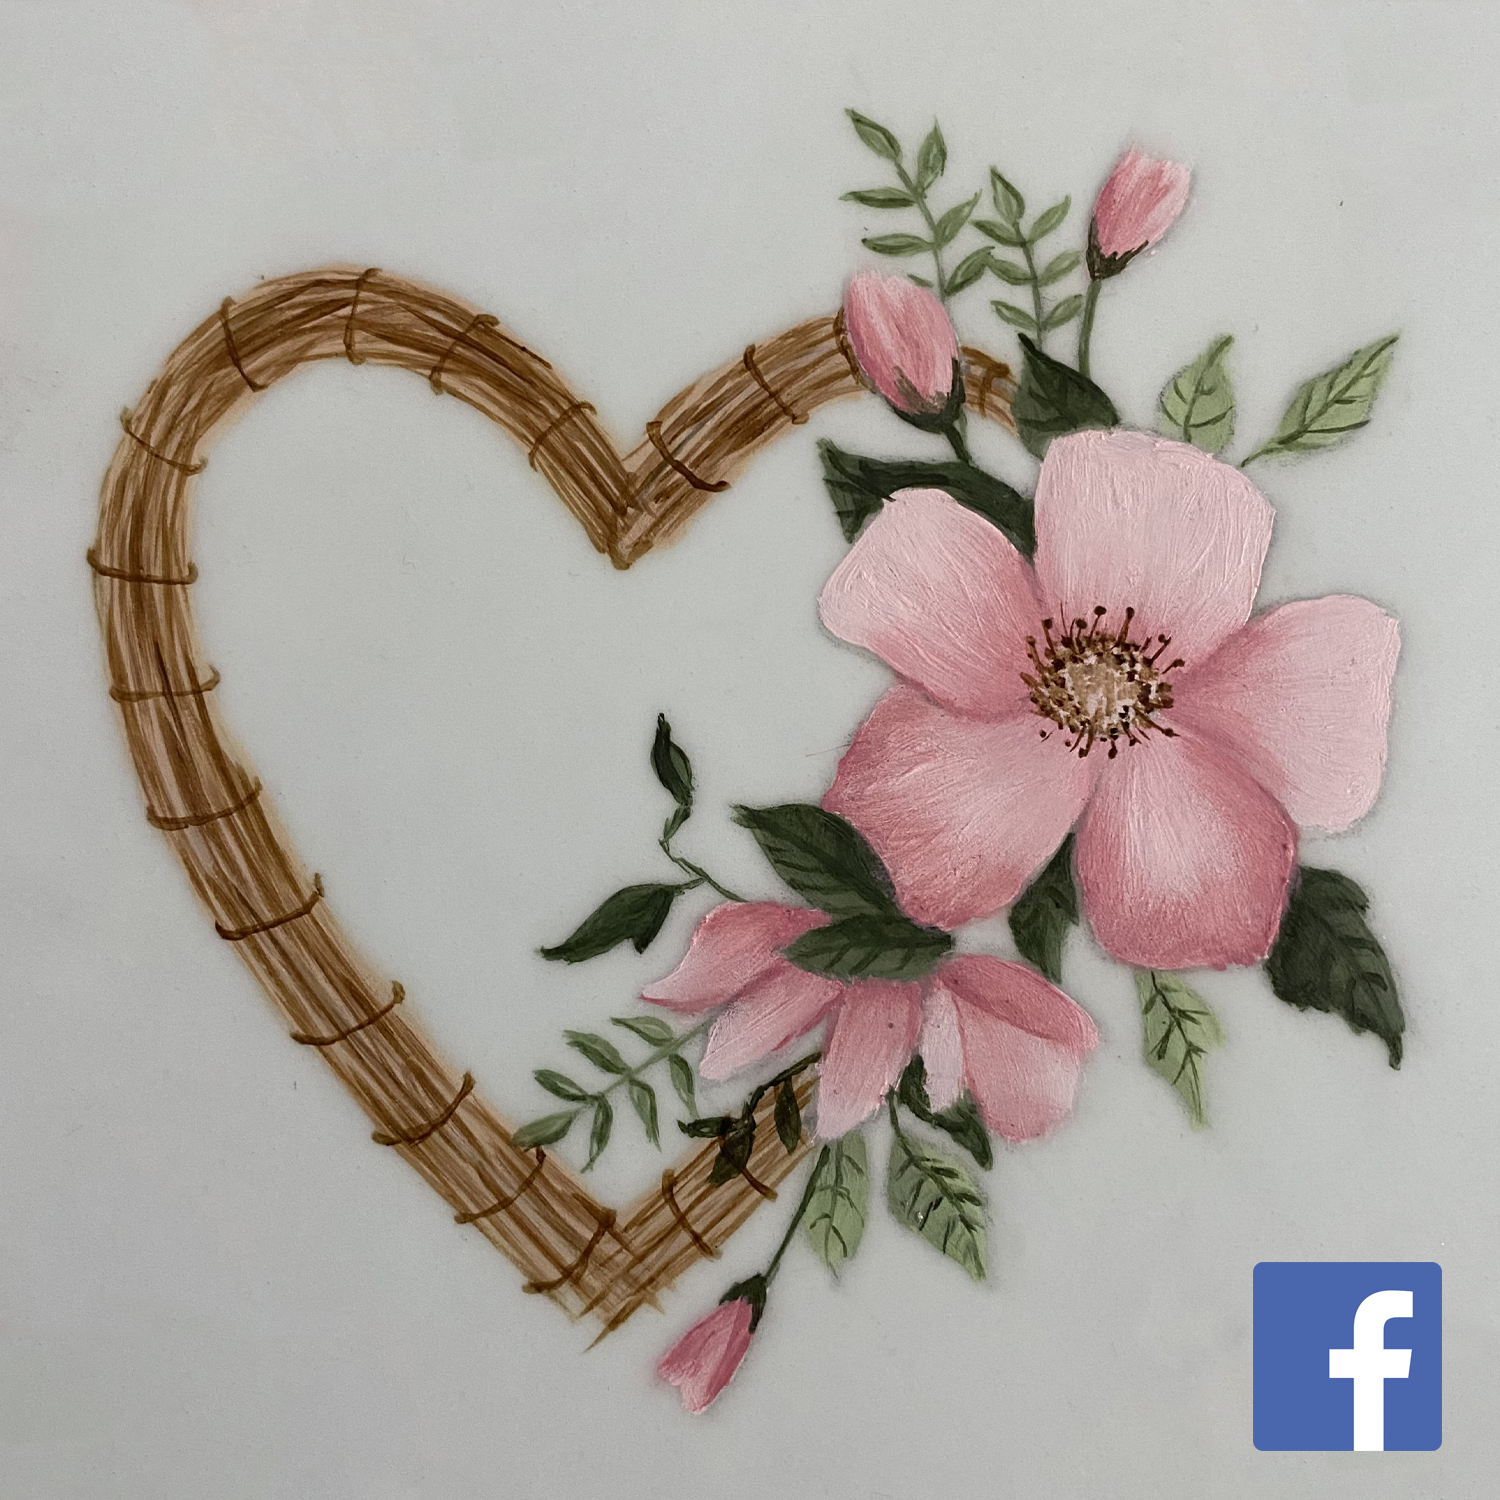 Rustic Heart and Flowers